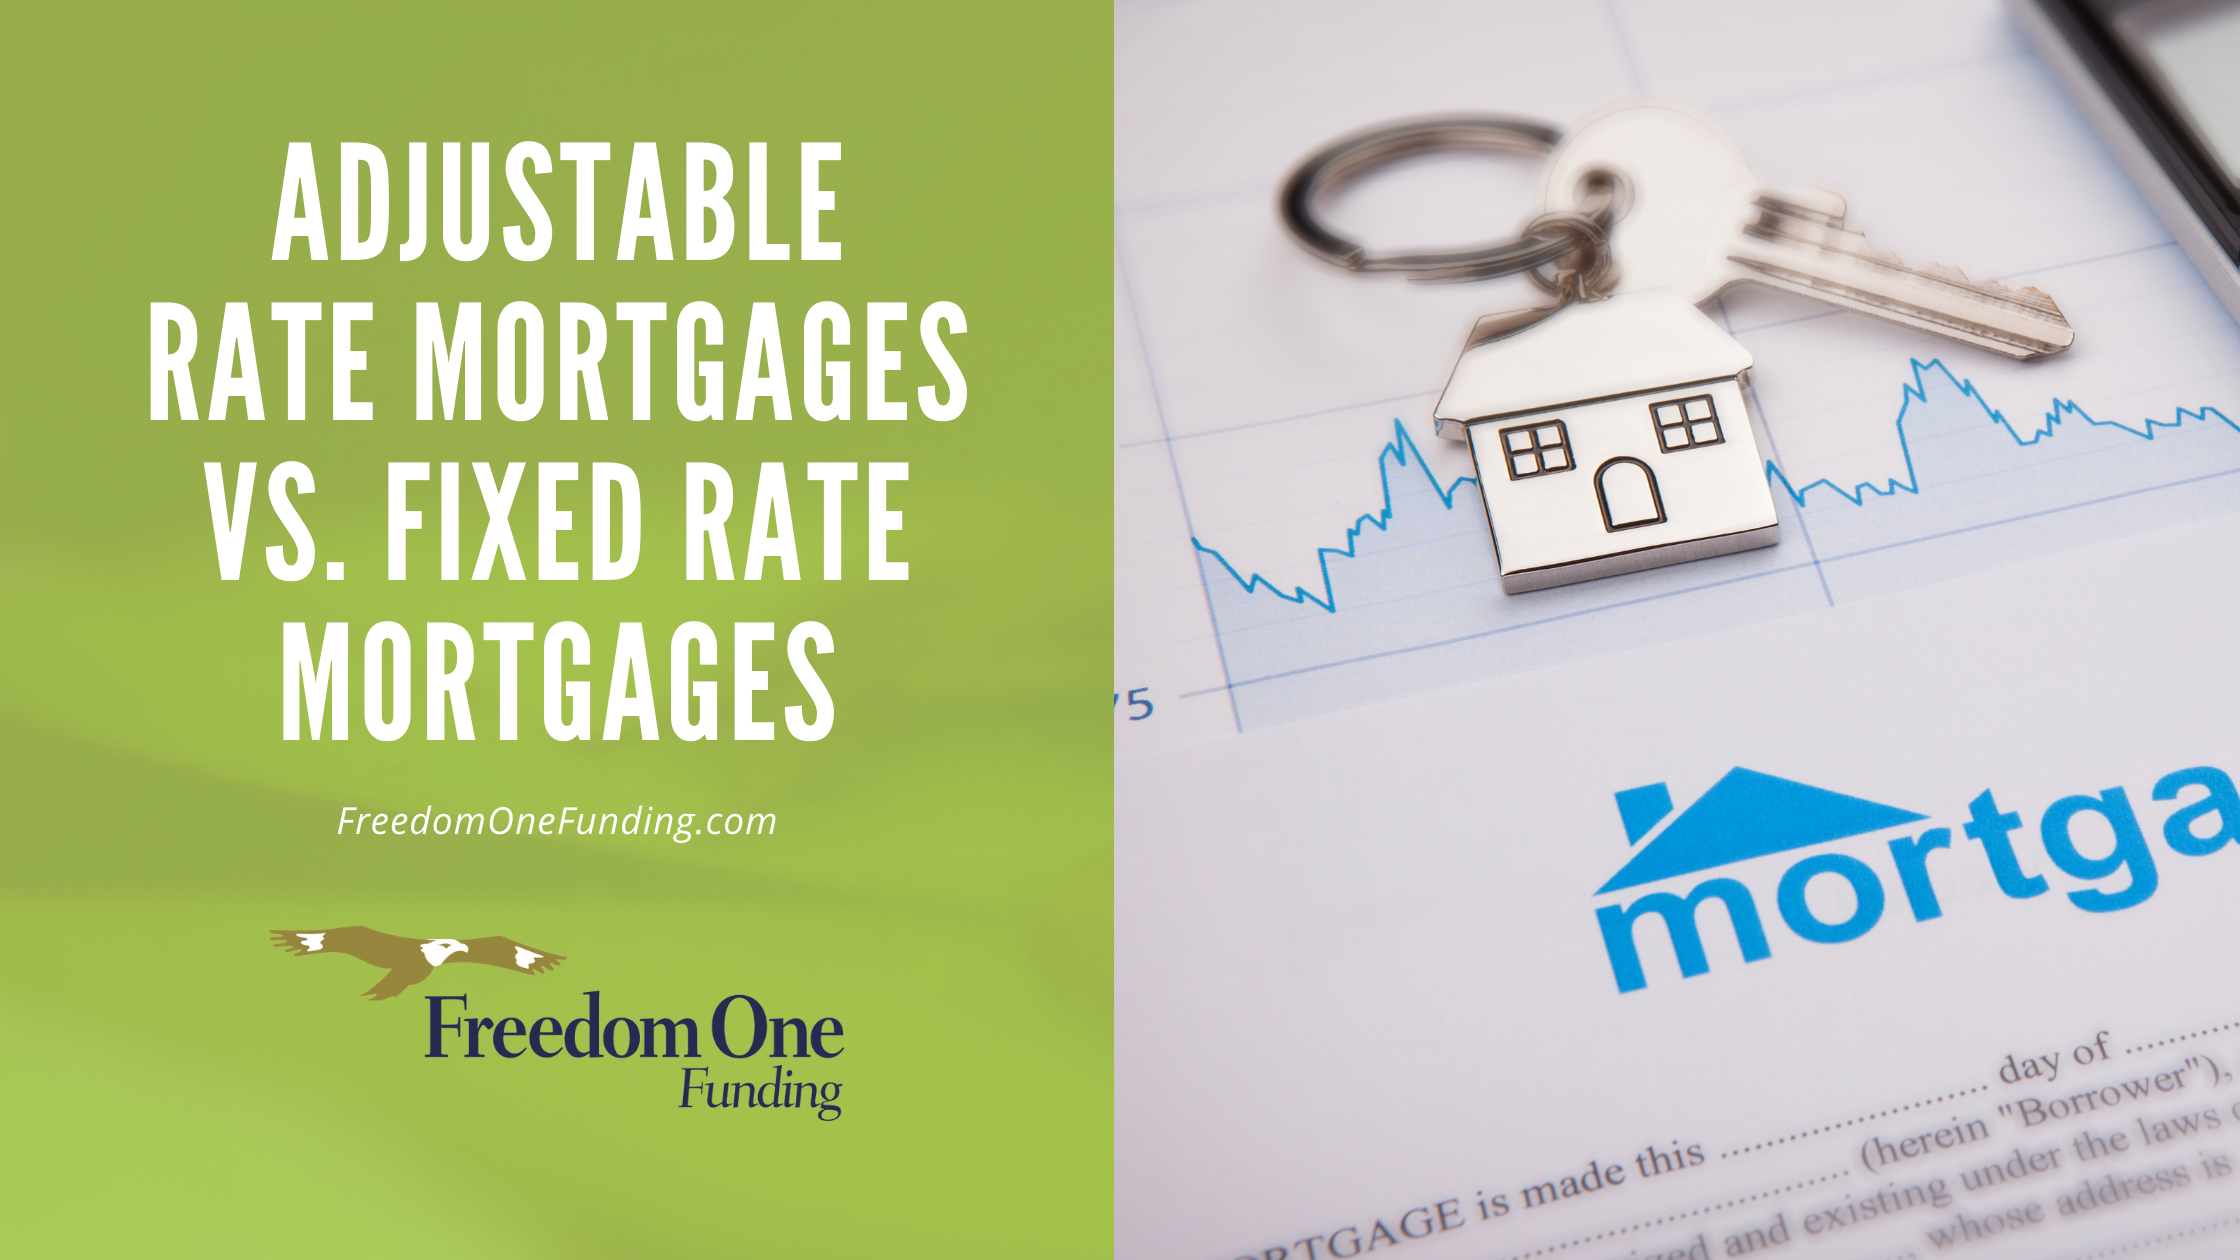 Adjustable Rate Mortgages vs. Fixed Rate Mortgages